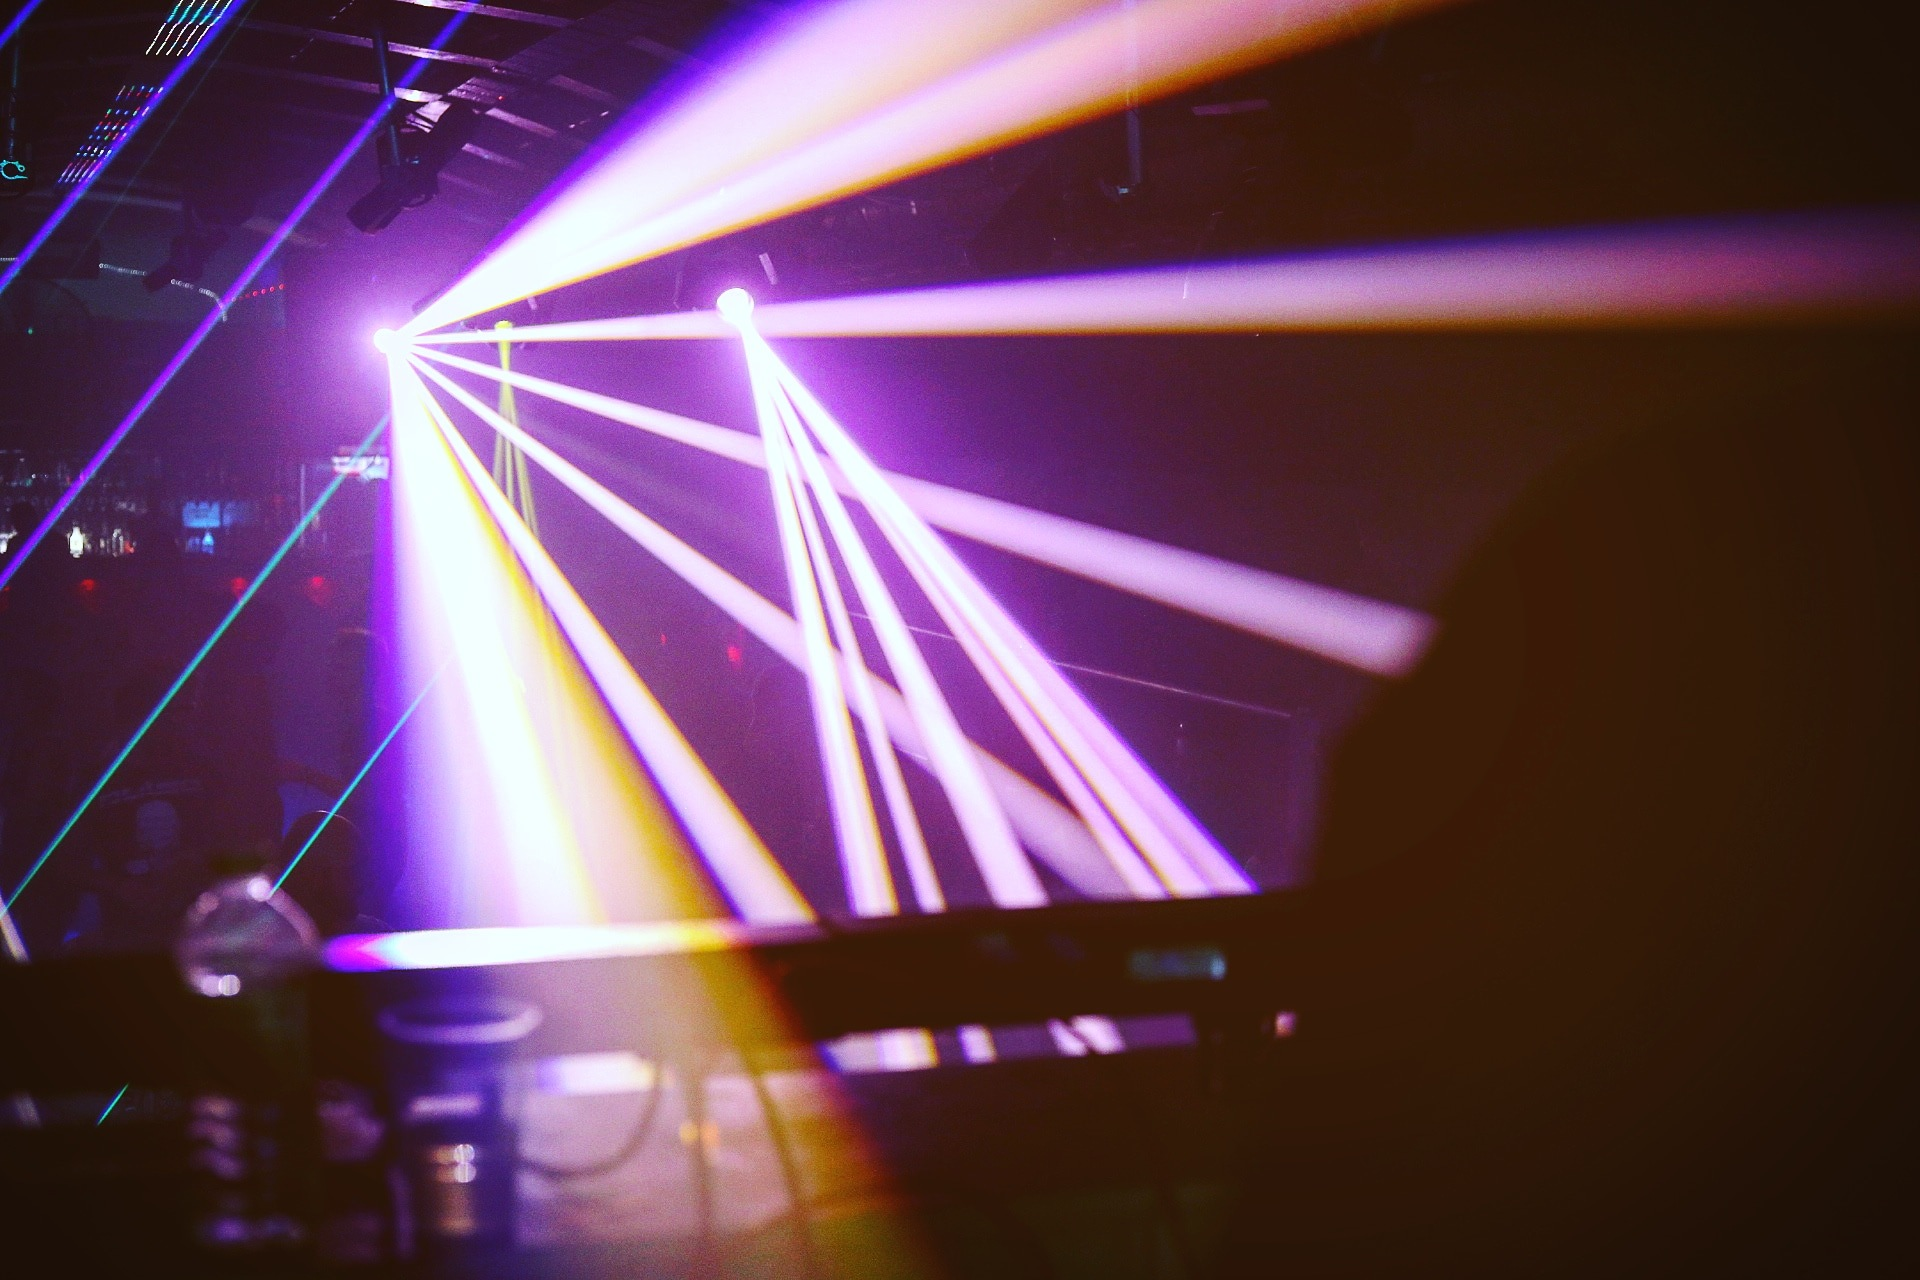 Light show by Ben Clements